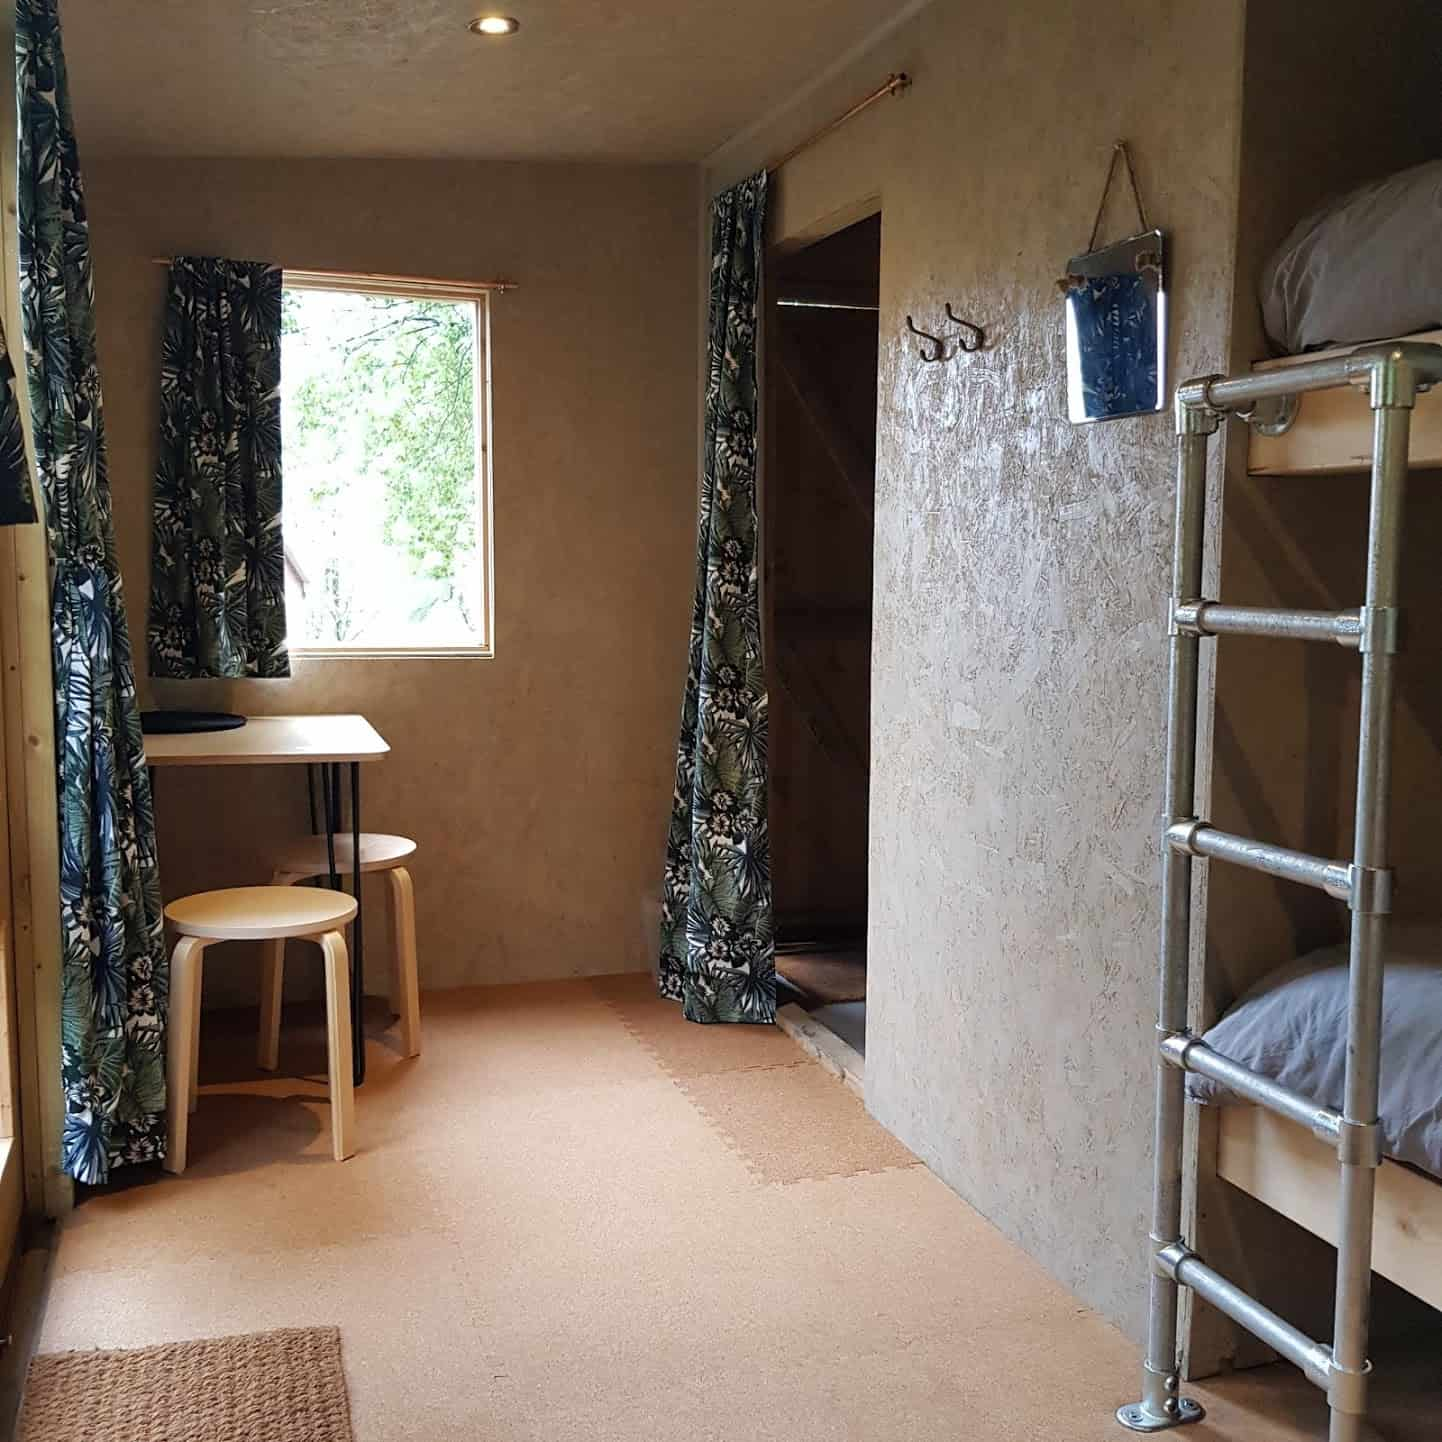 Cabin living area with table and four stools and a storage area for bikes, gear etc